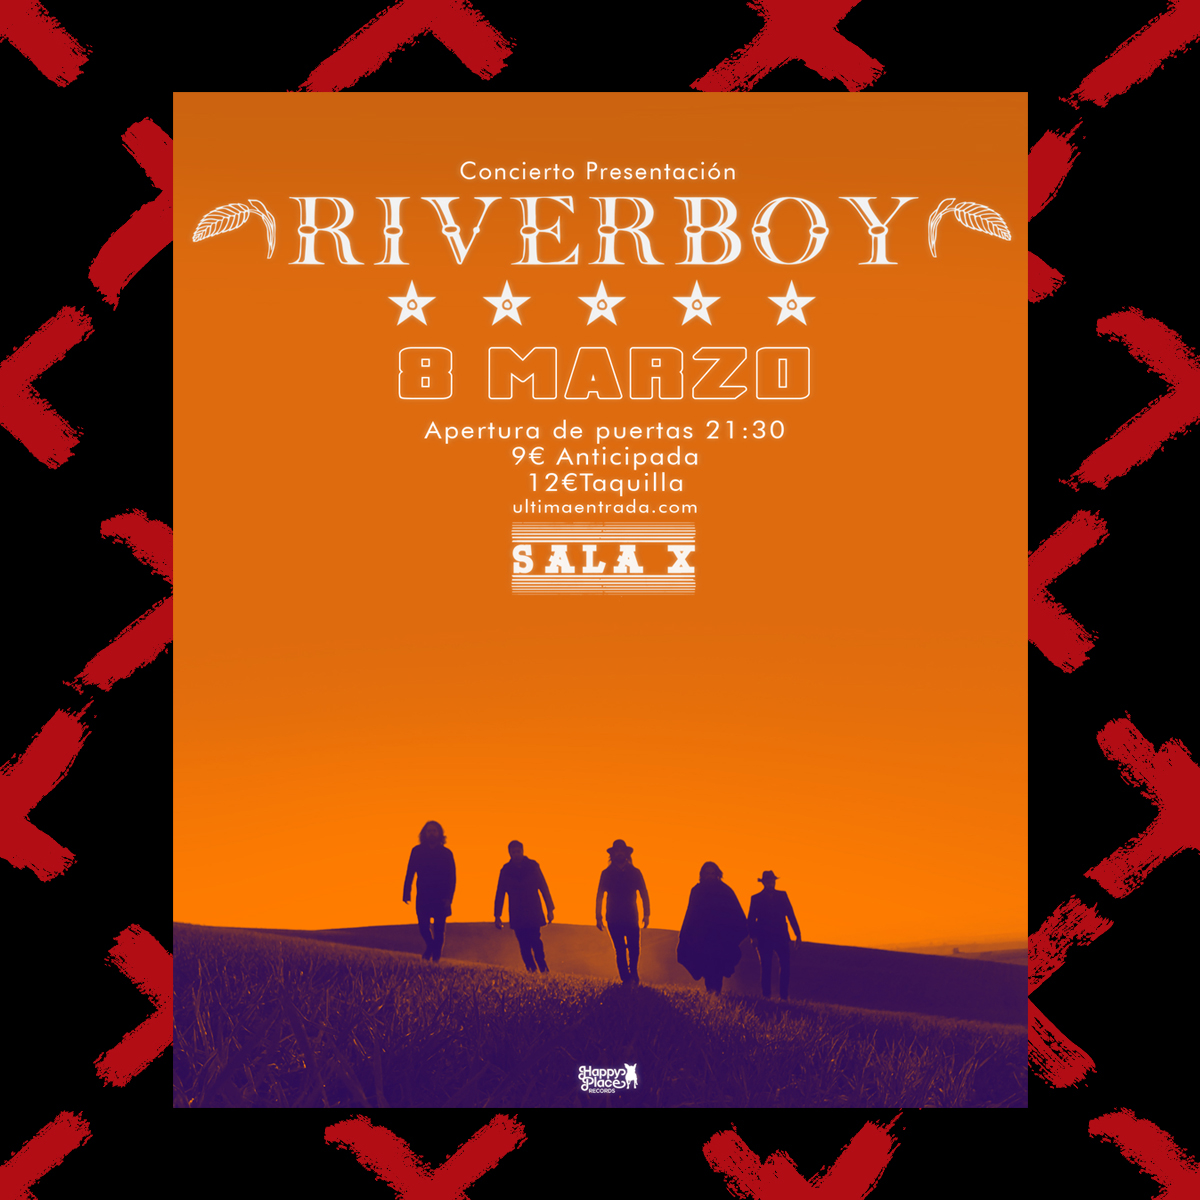 riverboy instagram